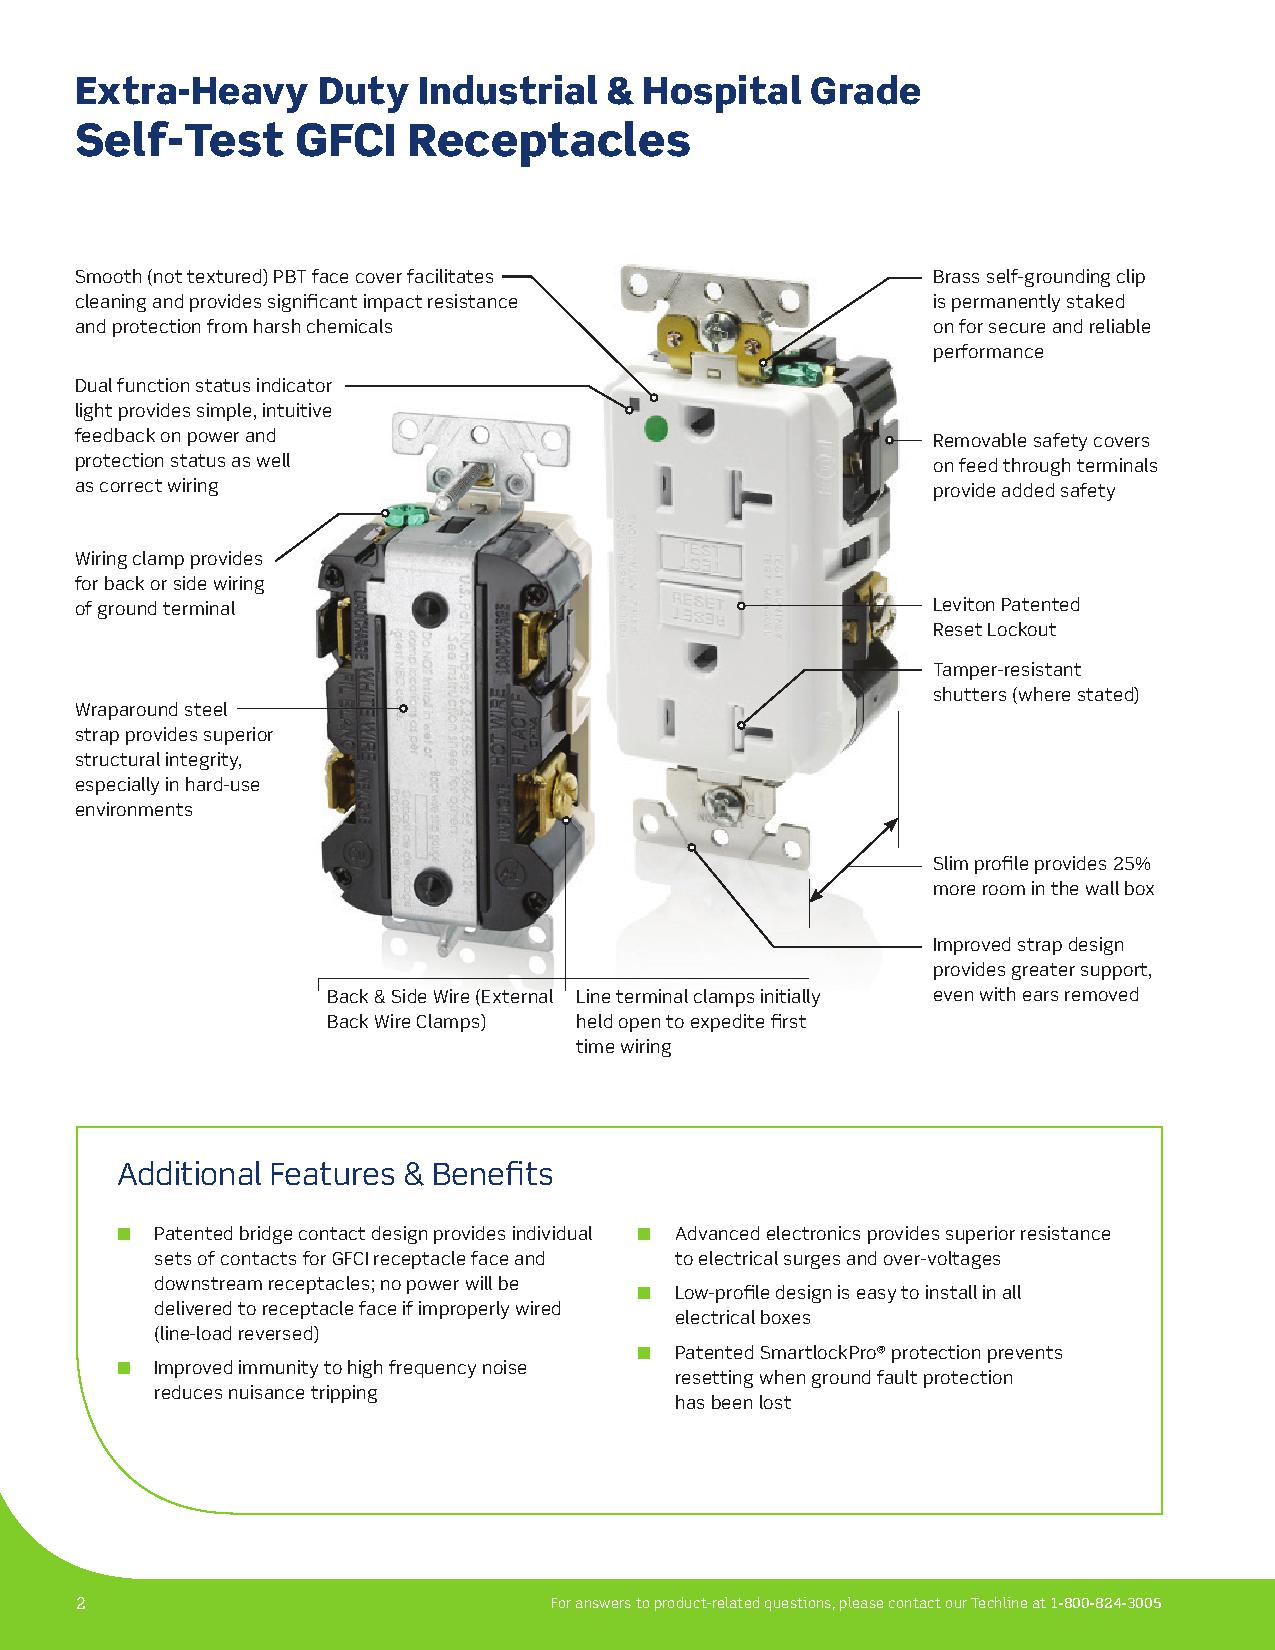 gfci receptacle wiring diagram 7way trailer get free image about